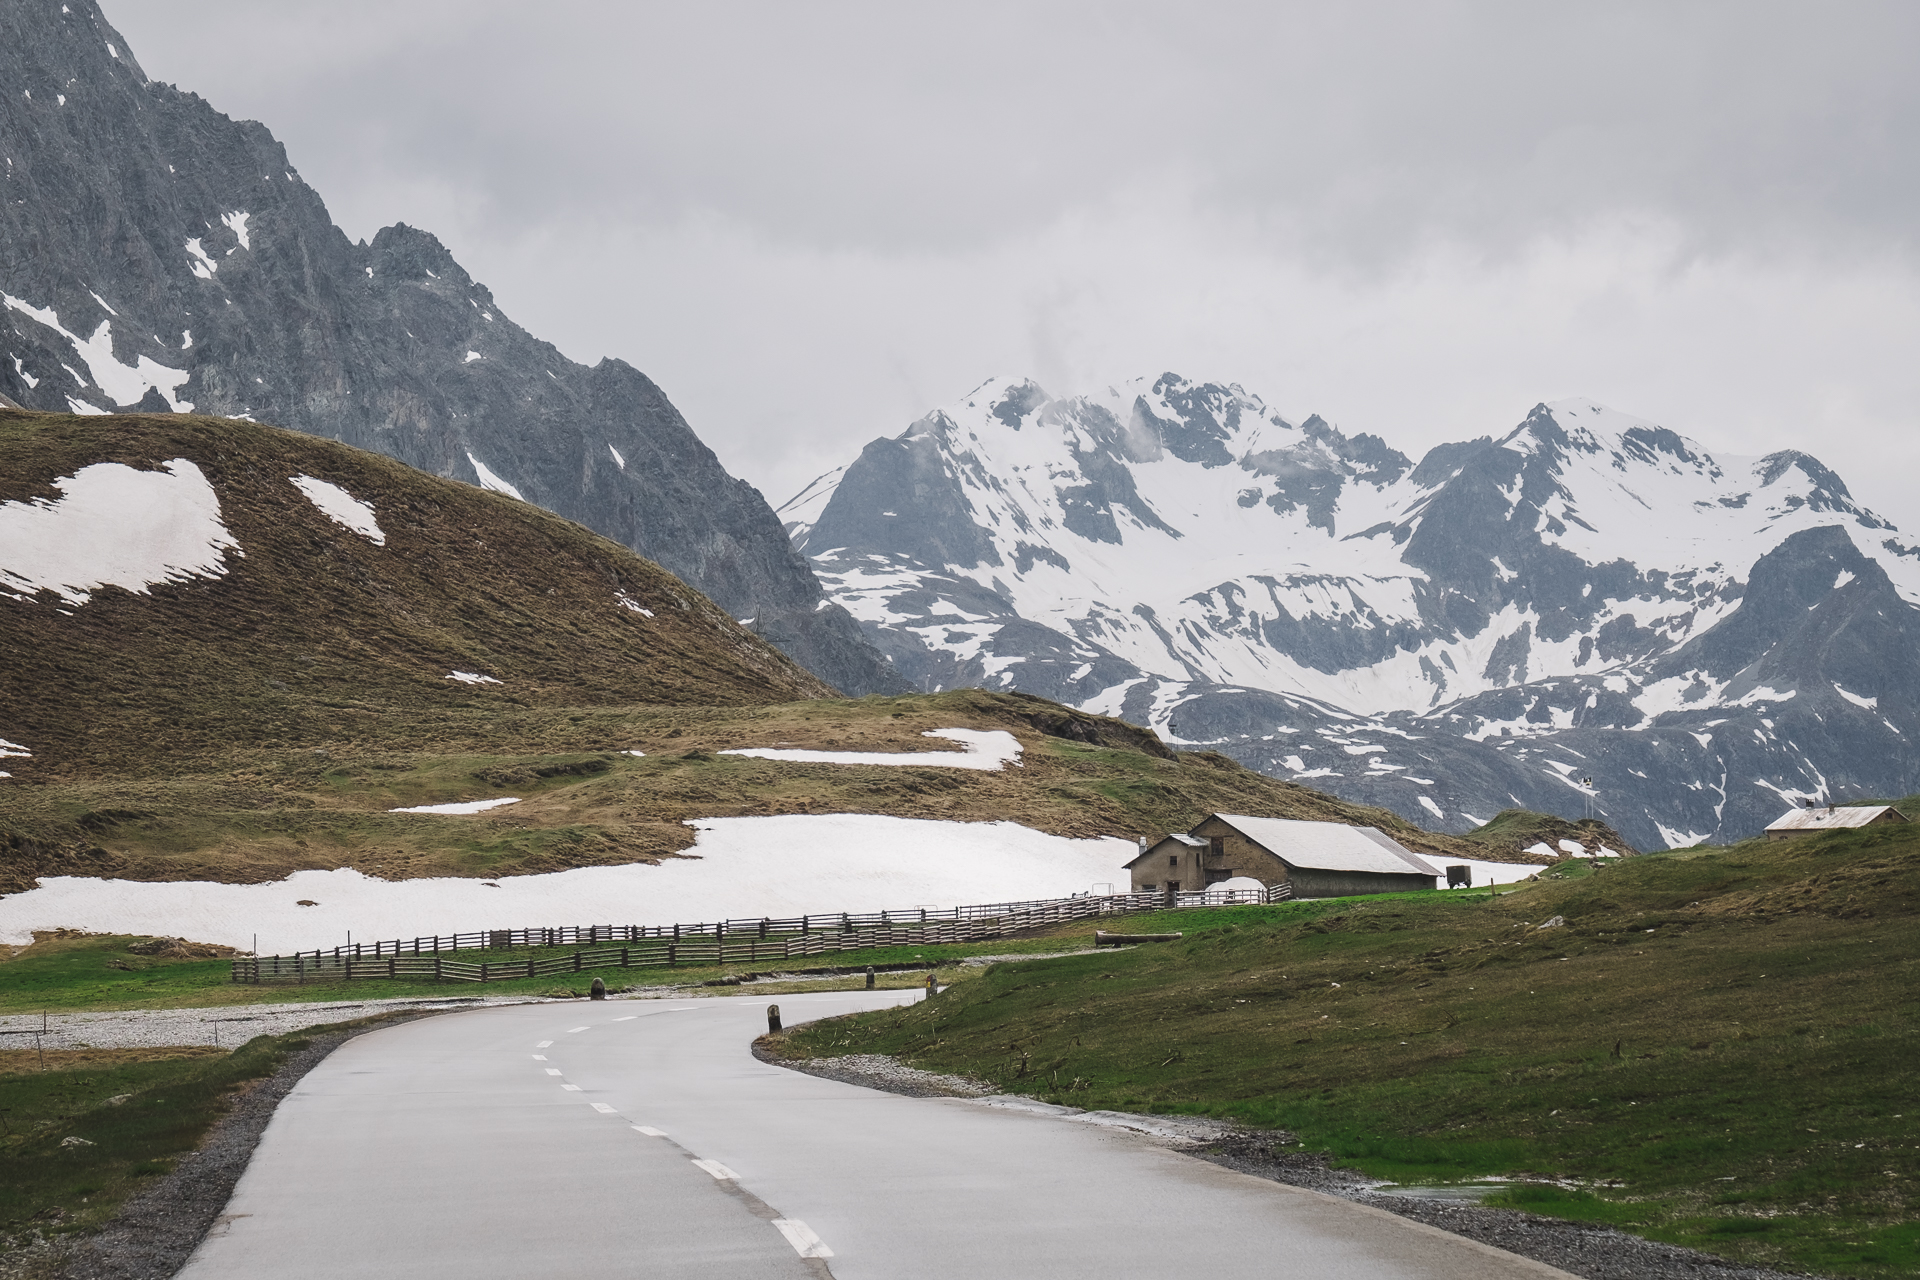 Albulapass, Graubunden, Switzerland, Bergun